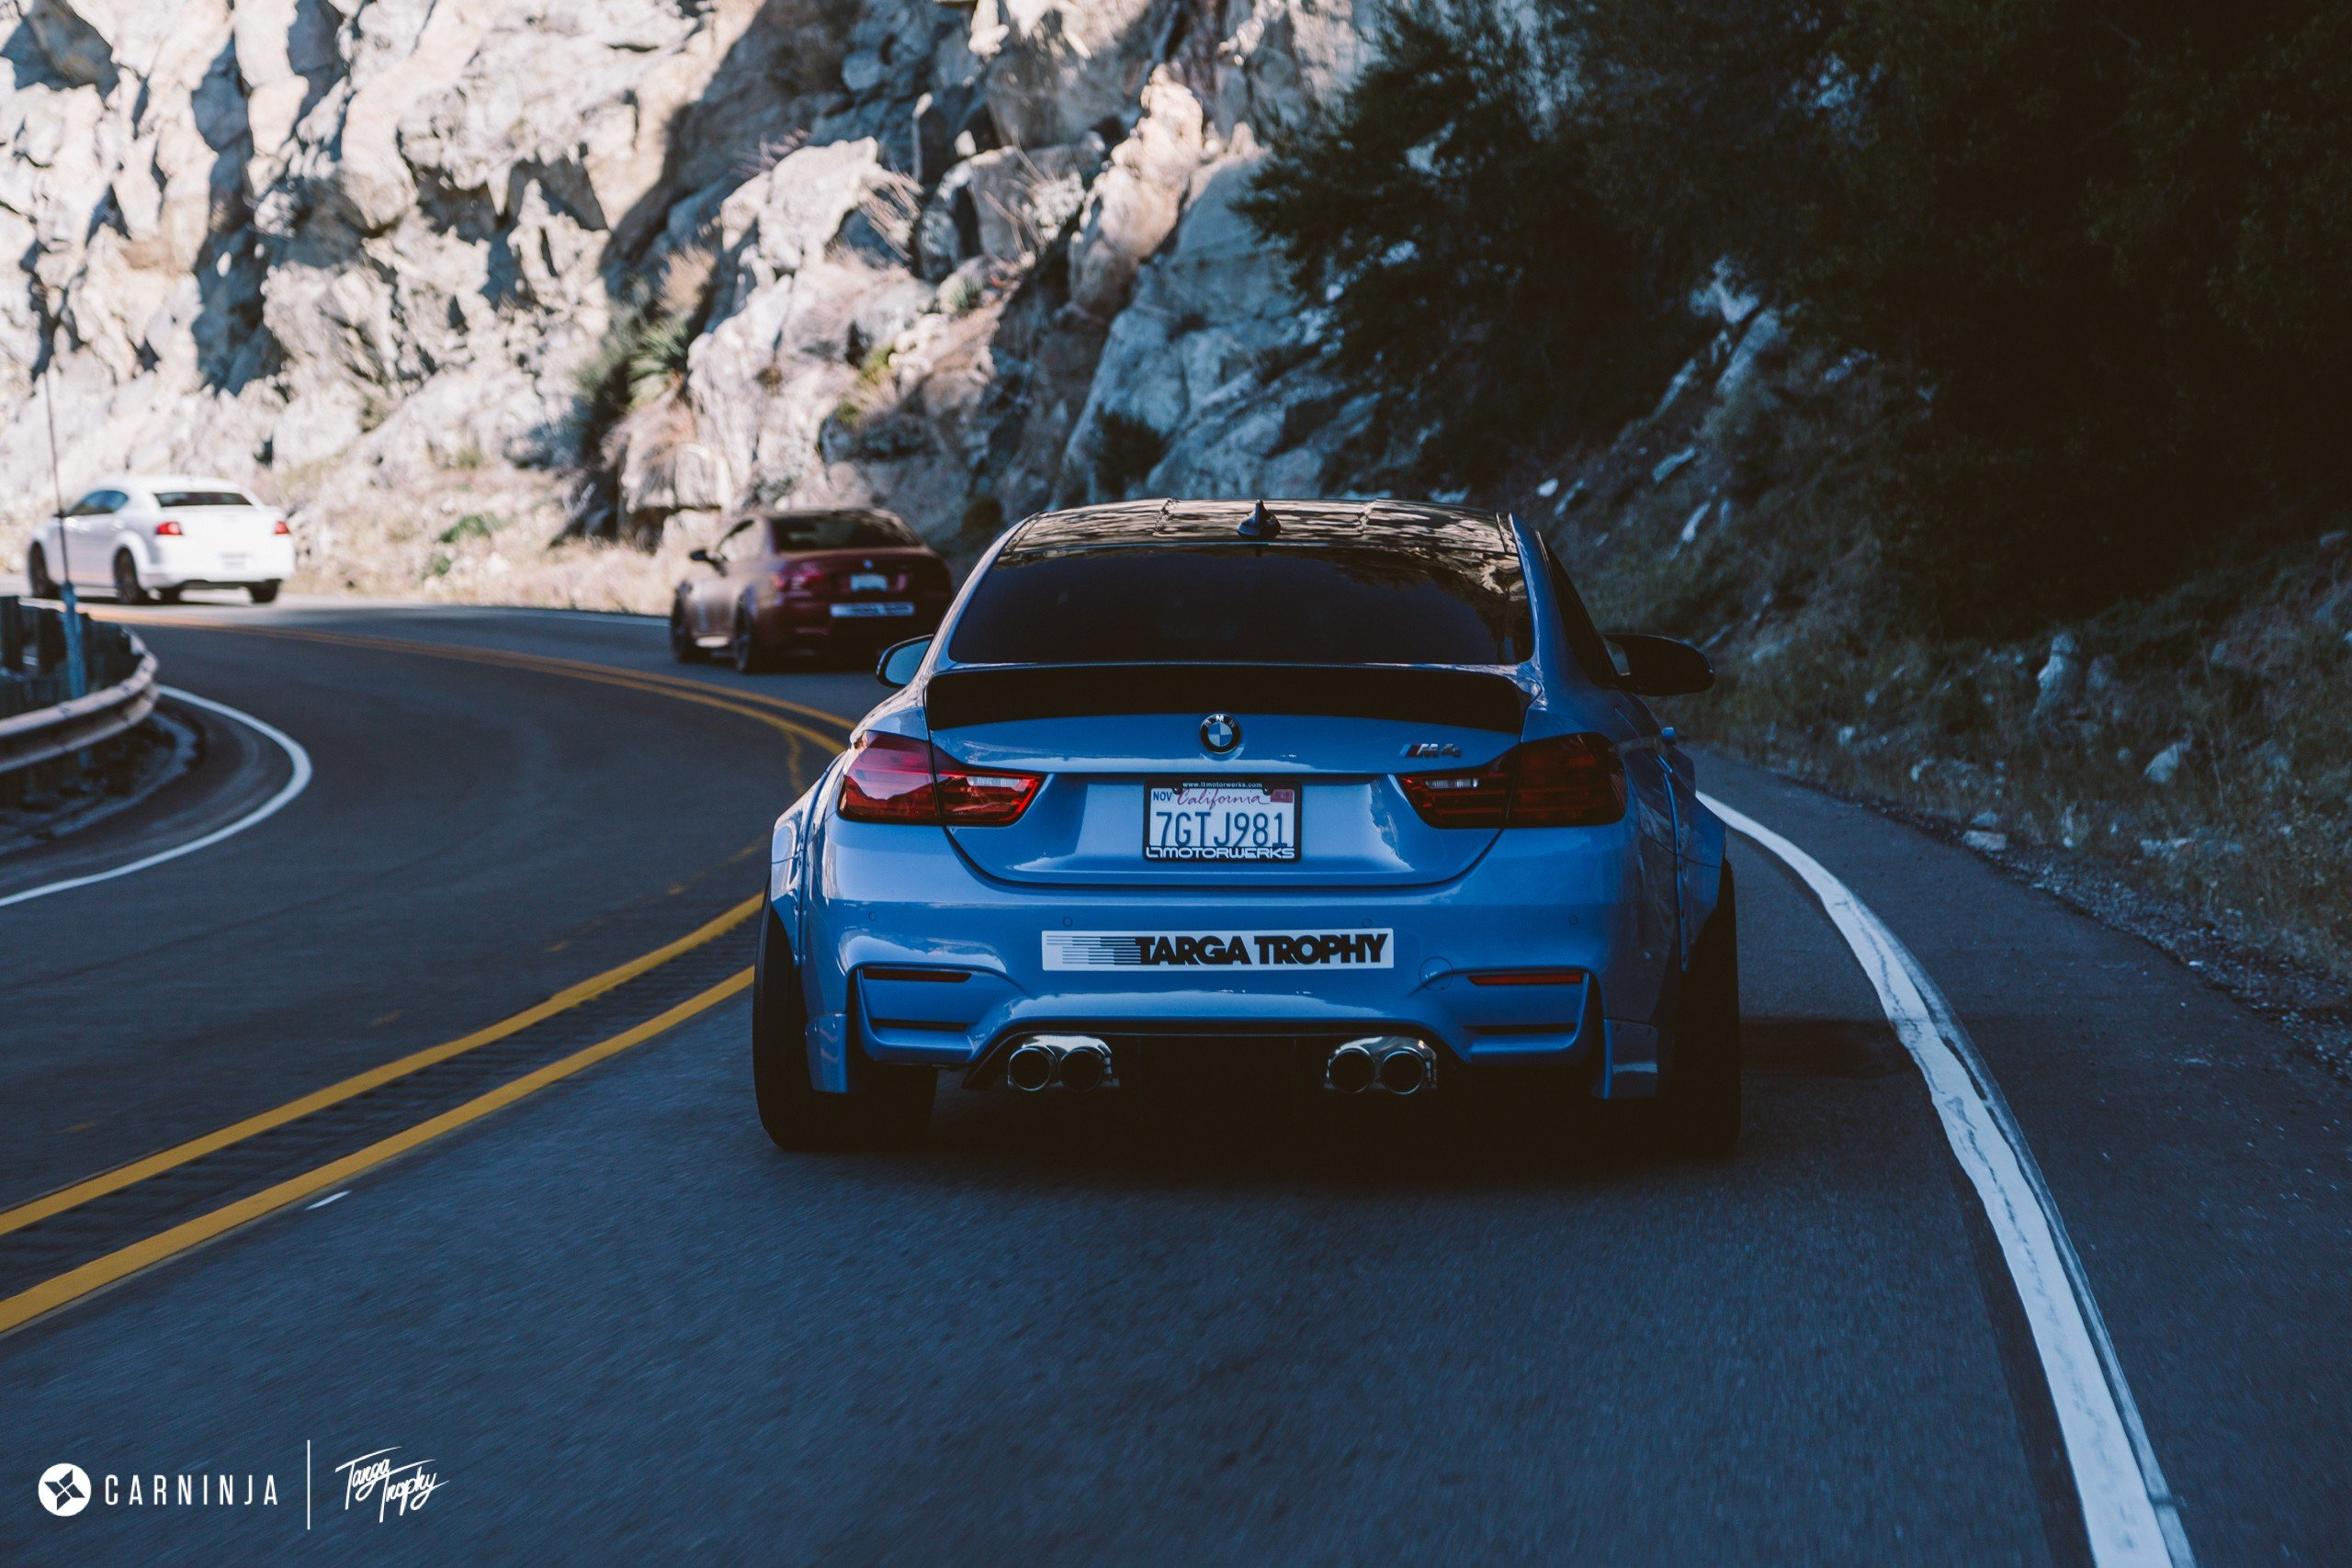 2560x1707 - BMW M4 Wallpapers 29